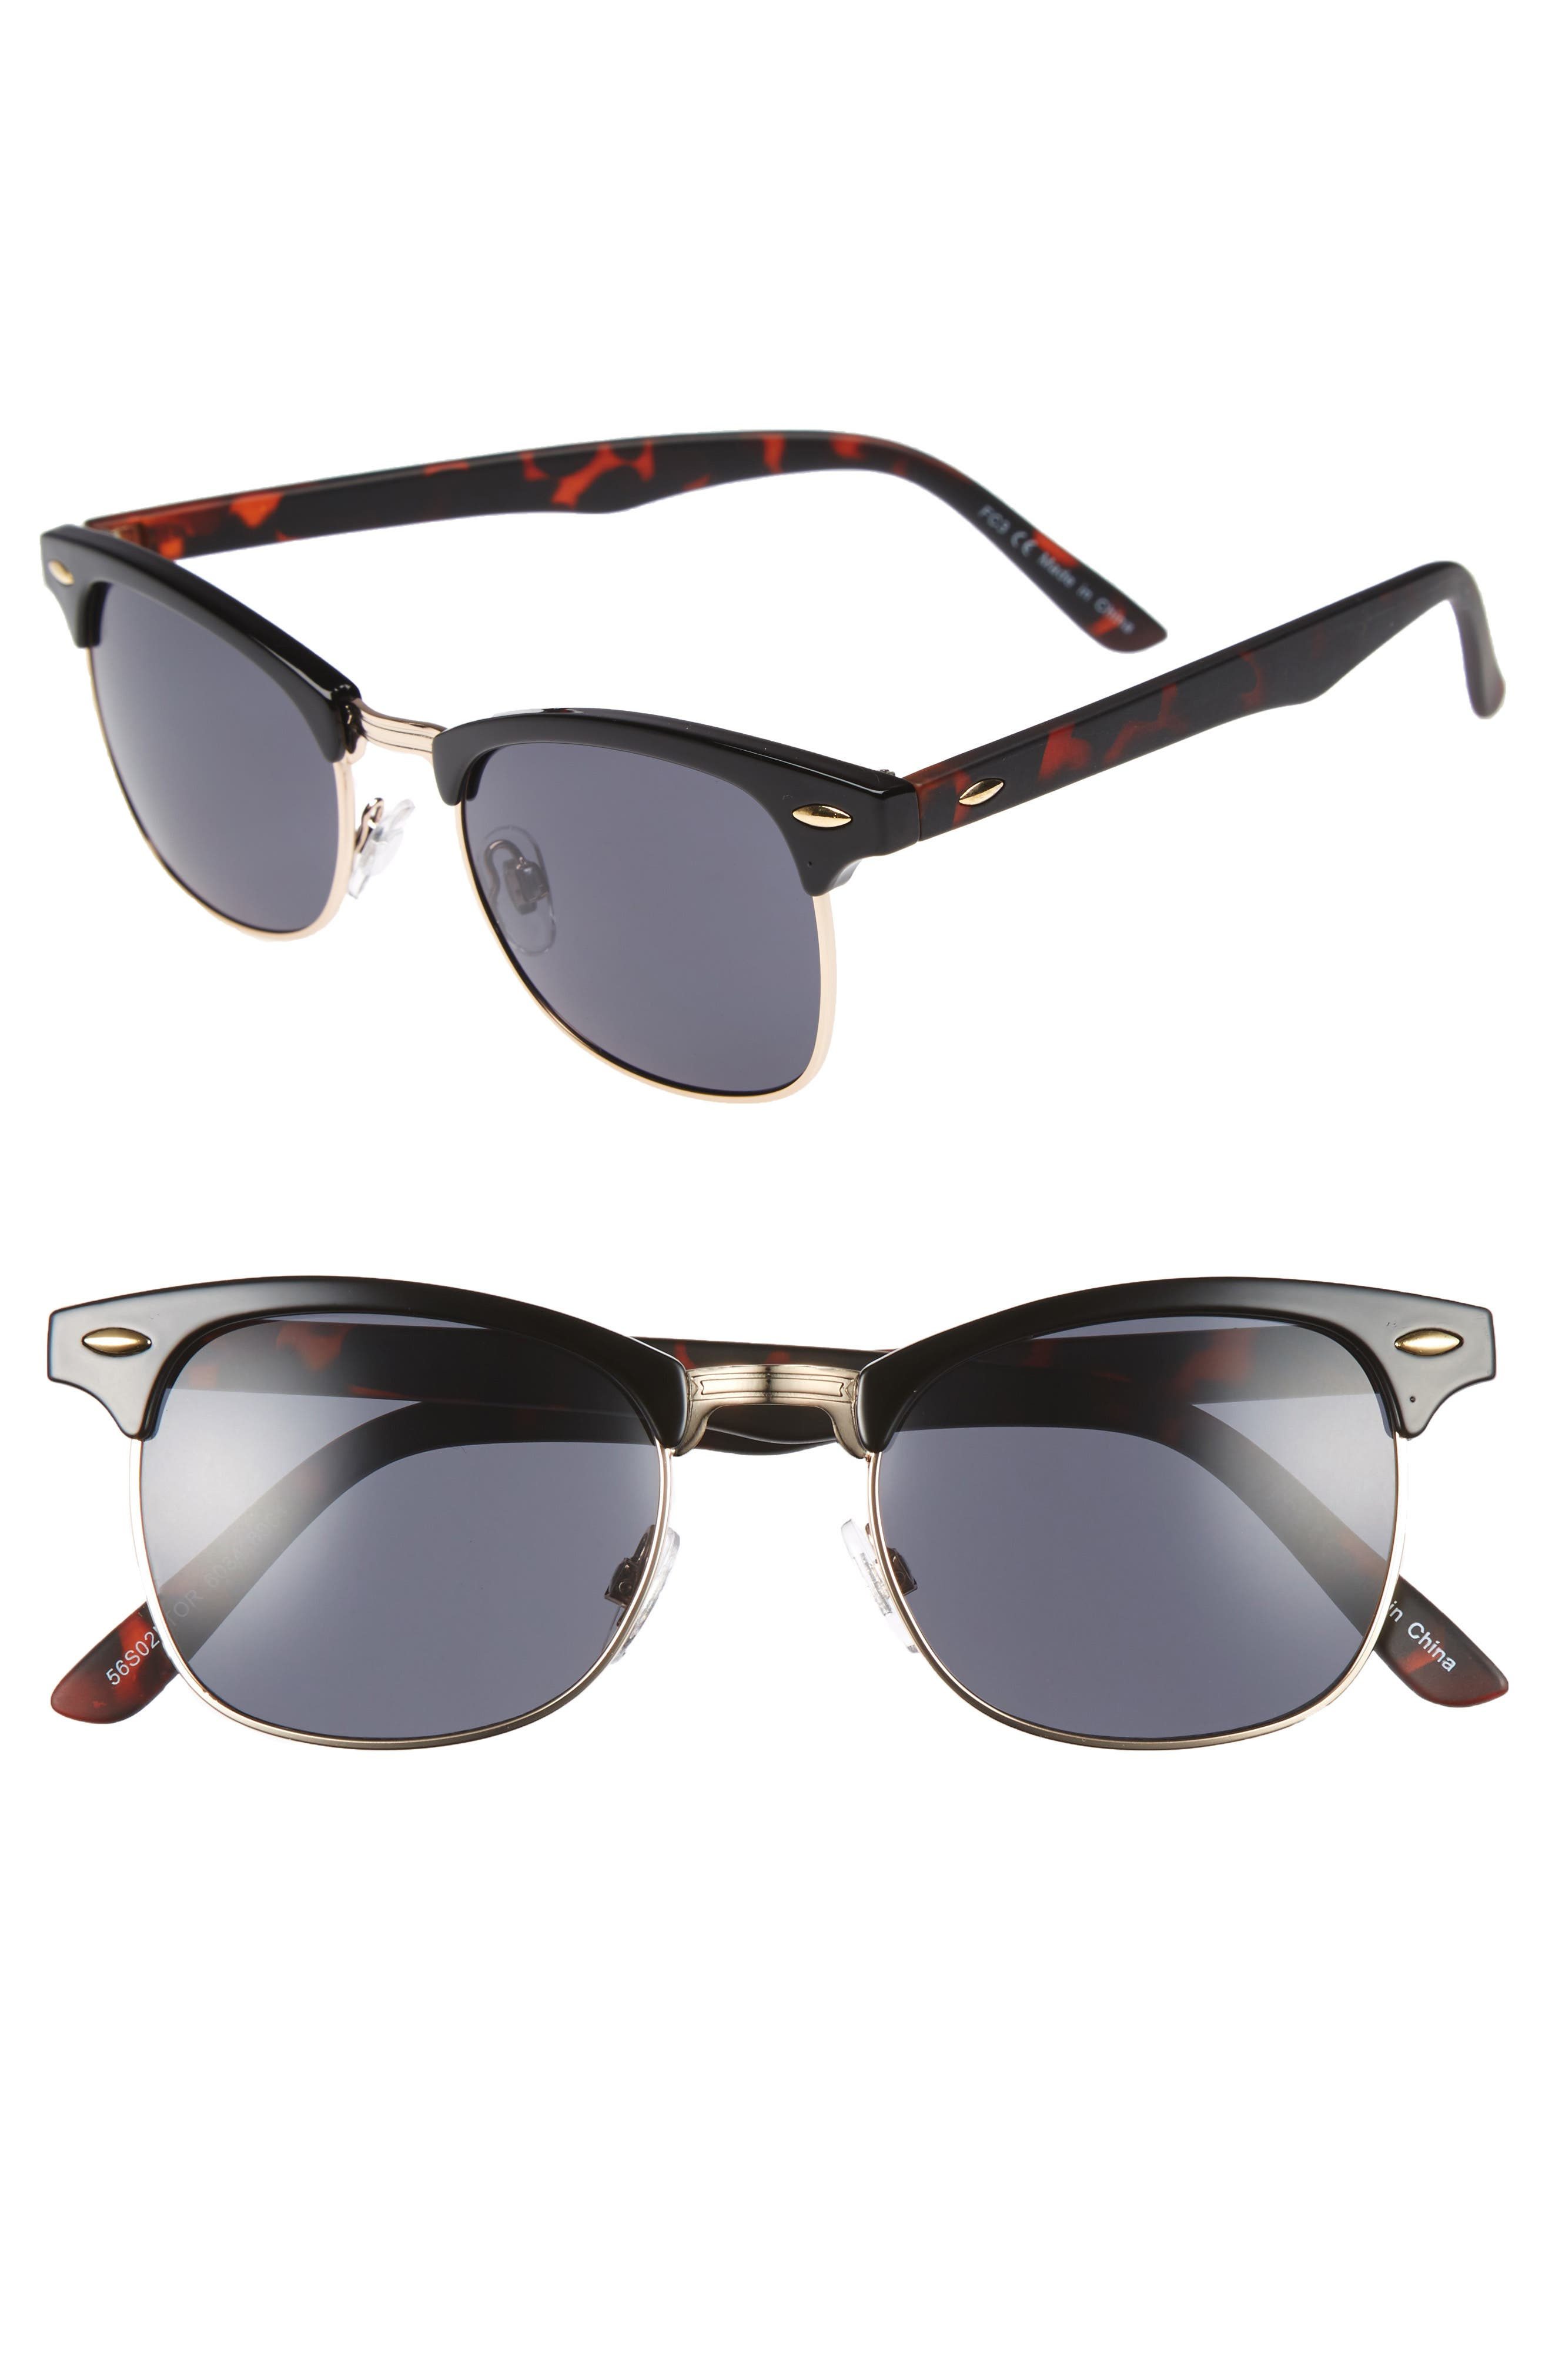 Clubmaster 50mm Sunglasses,                             Alternate thumbnail 2, color,                             200